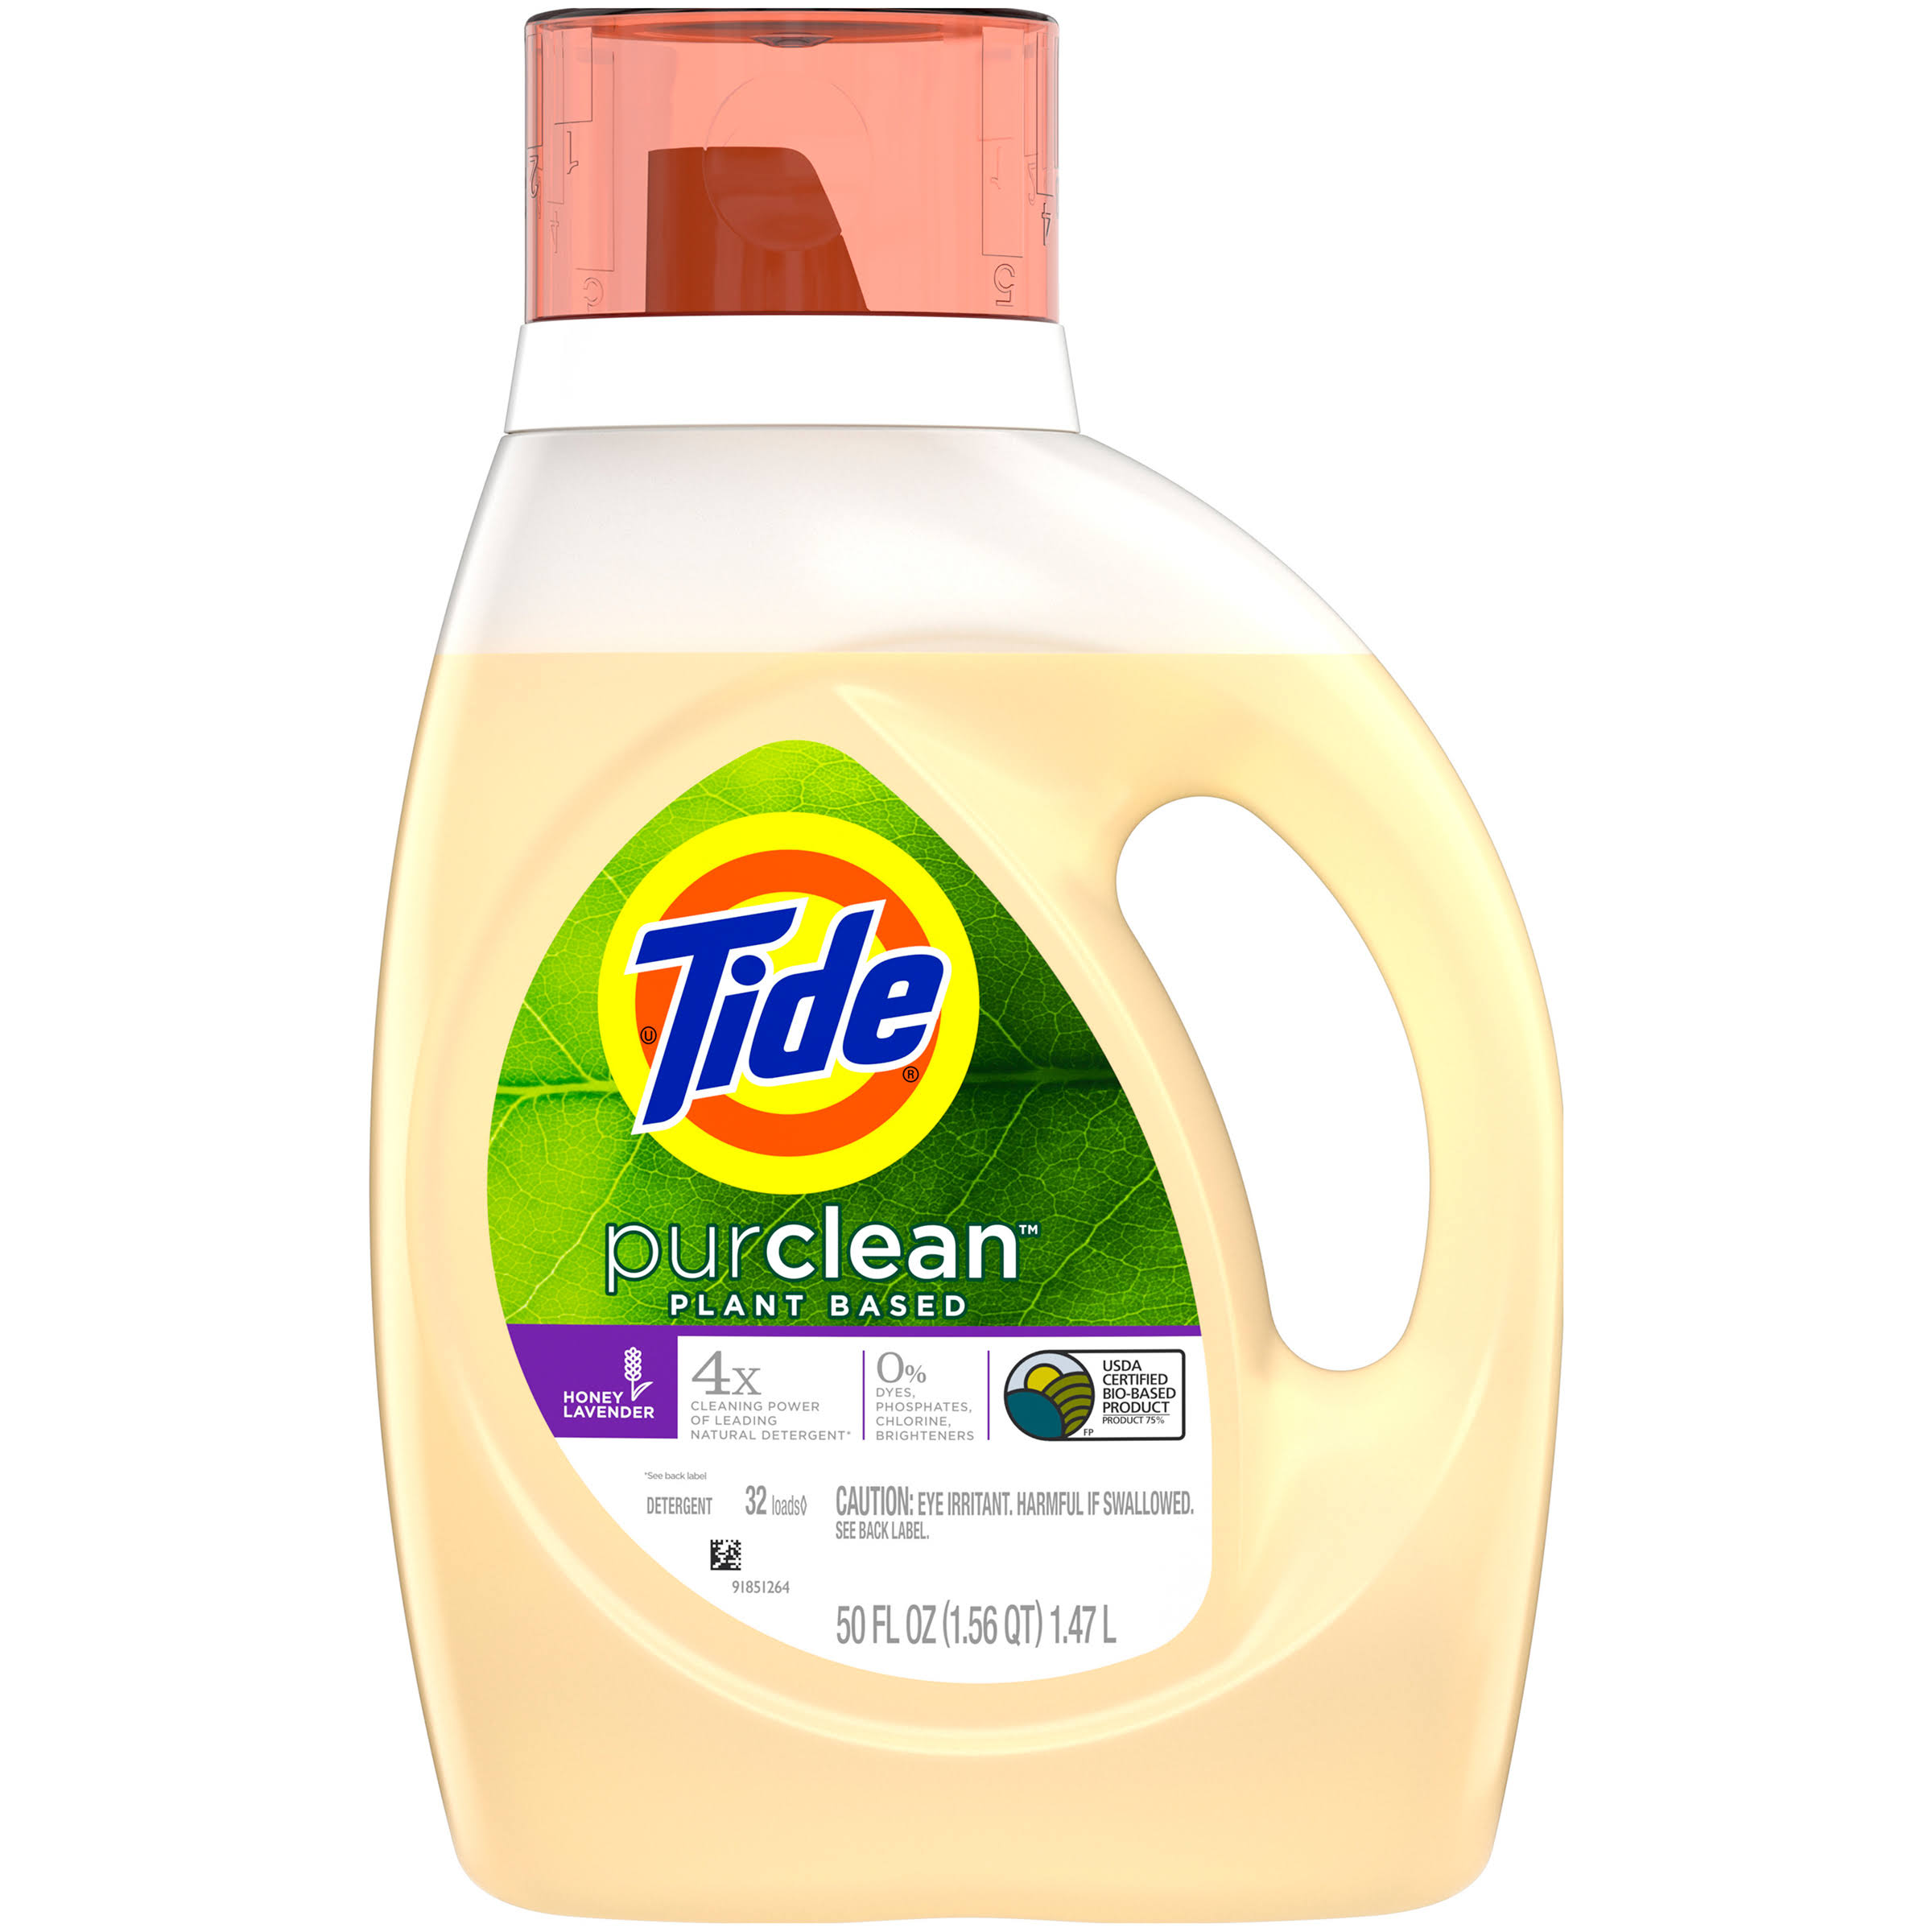 Tide Purclean Liquid Laundry Detergent - Honey Lavender Scent, 32 Loads